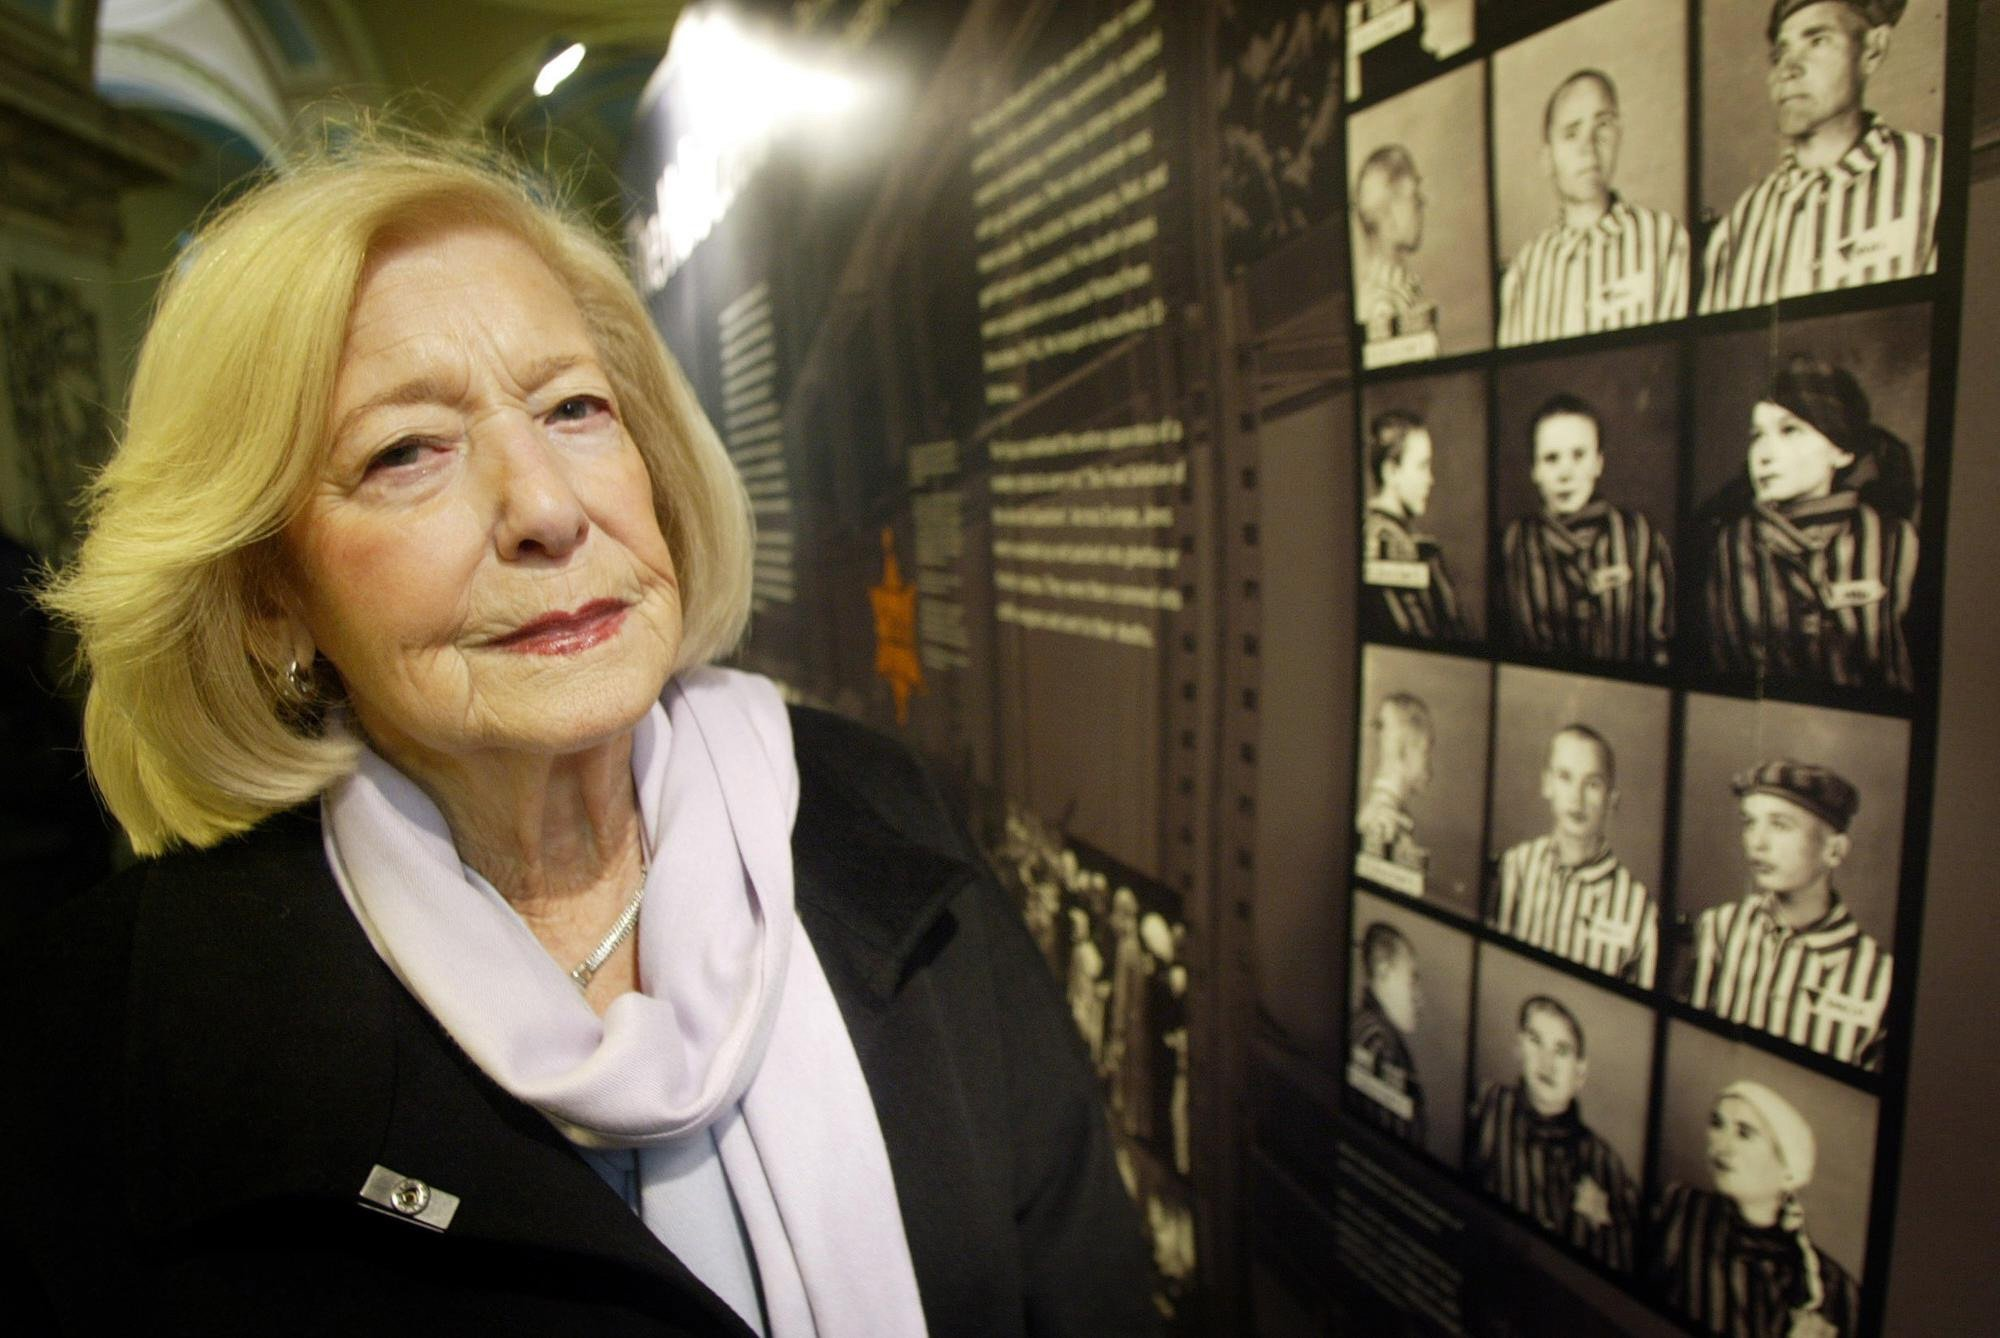 Holocaust Survivor Gena turgel, examines a Holocaust Memorial board at Belfast City Hall ahead of speaking at the UK's main commemoration for National Holocaust Memorial Day.